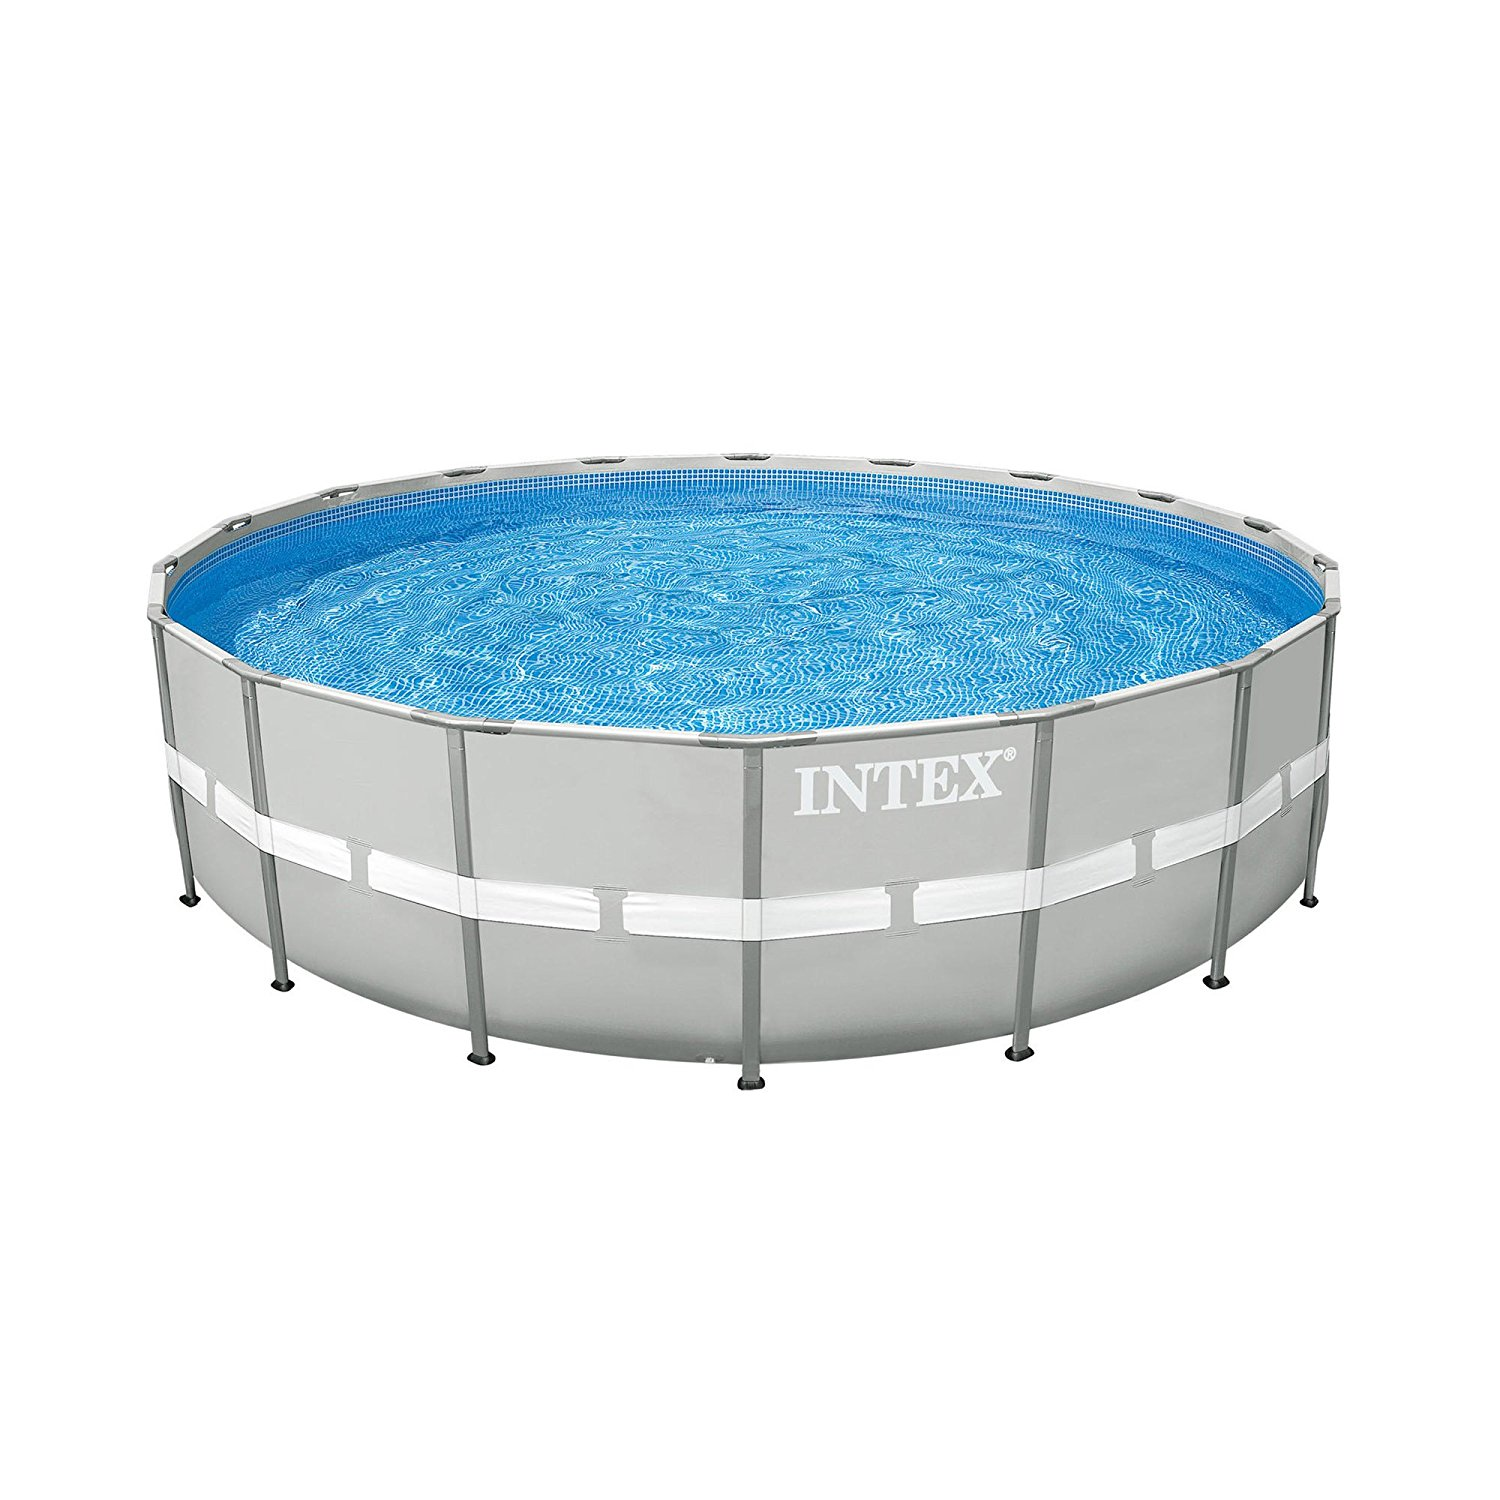 """Intex 24' x 52"""" Steel Ultra Frame Round Above Ground Swimming Pool Set with Pump"""